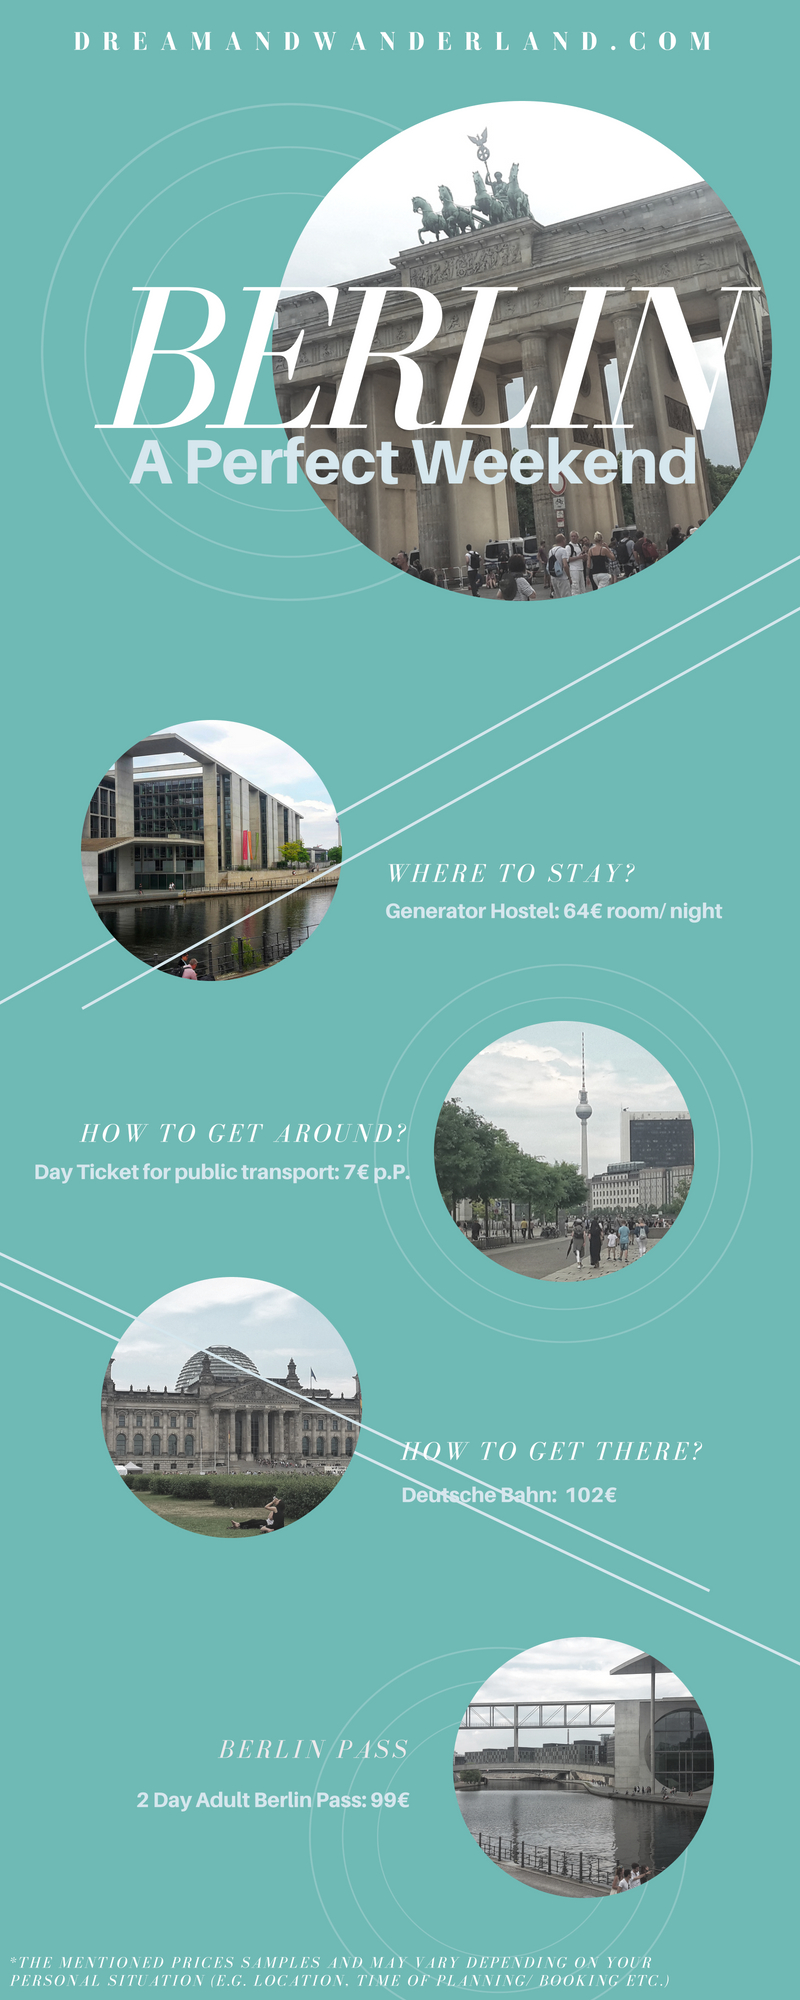 How To Spend A Perfect Day In Berlin, Germany - Dream and Wanderland